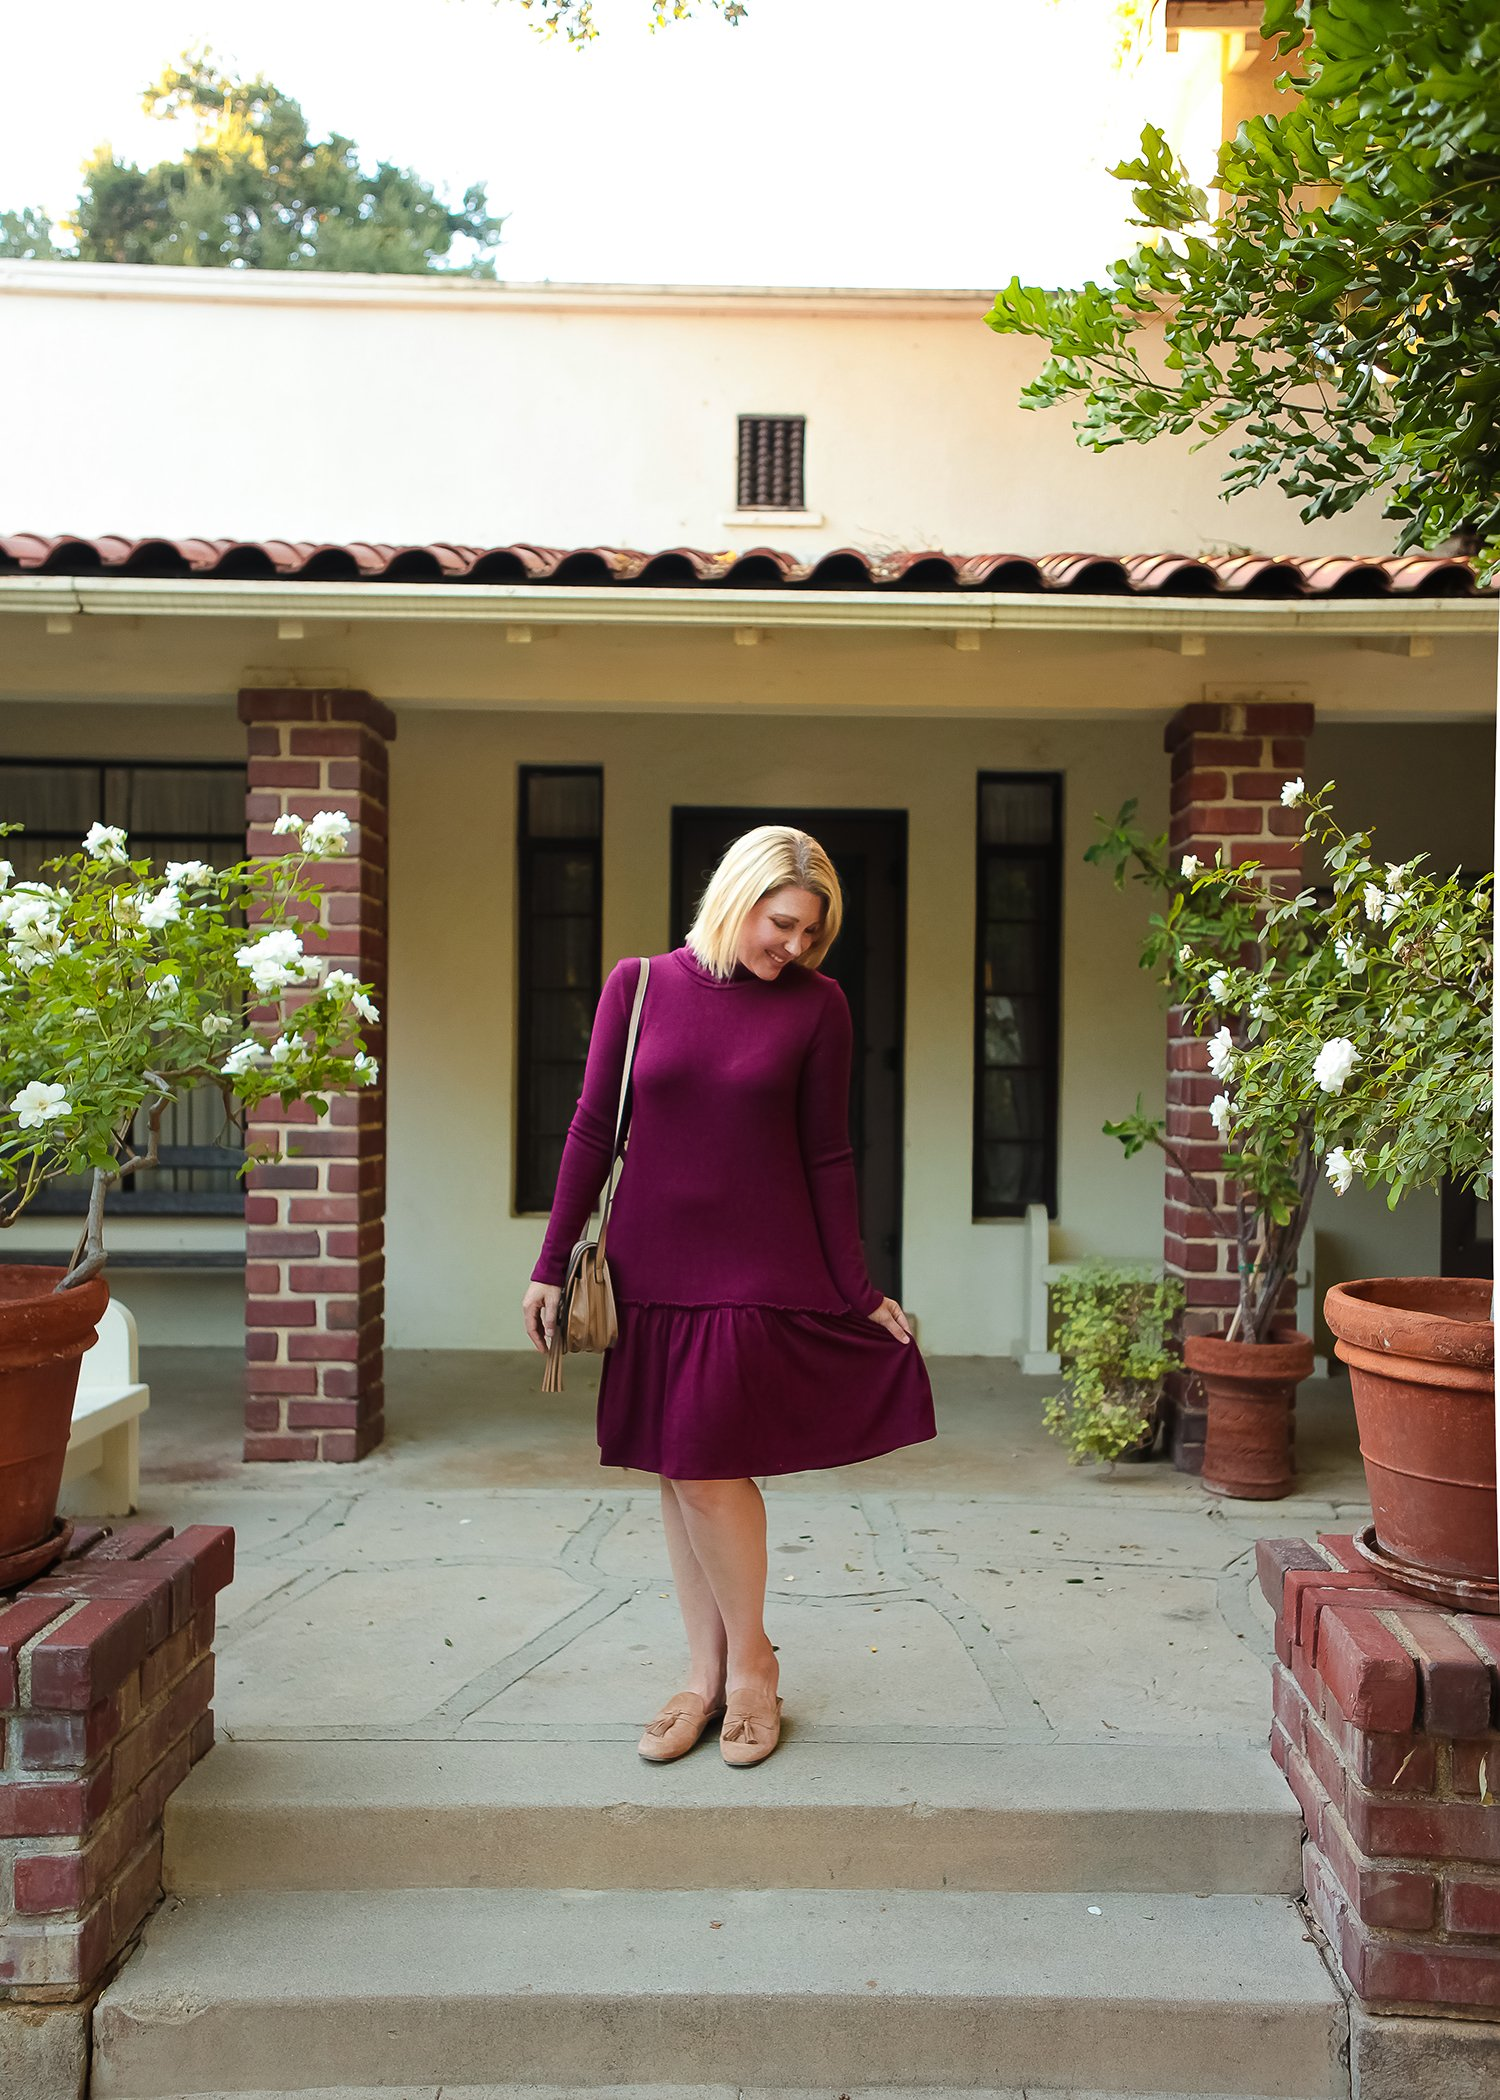 Looking for holiday dresses? I love this simple, flattering red sweater dress (and it's under $100)!